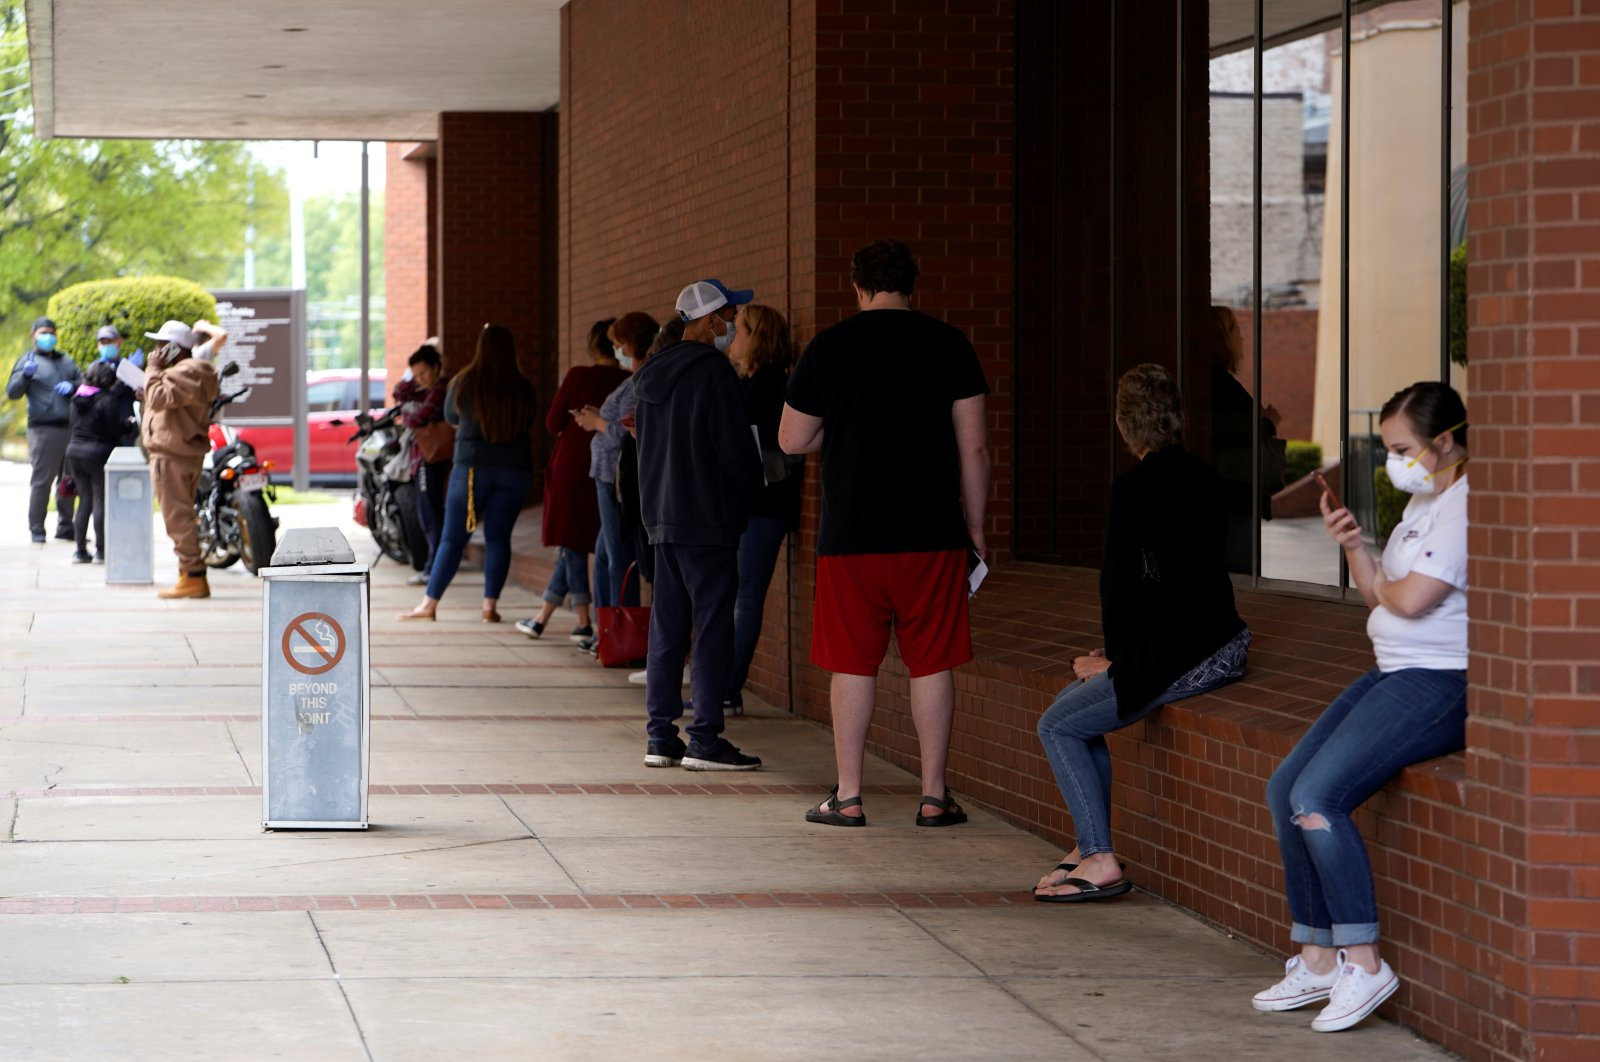 People who lost their jobs wait in line to file for unemployment following an outbreak of the coronavirus, at an Arkansas Workforce Center in Fort Smith, Arkansas, U.S., April 6, 2020. (Reuters Photo)